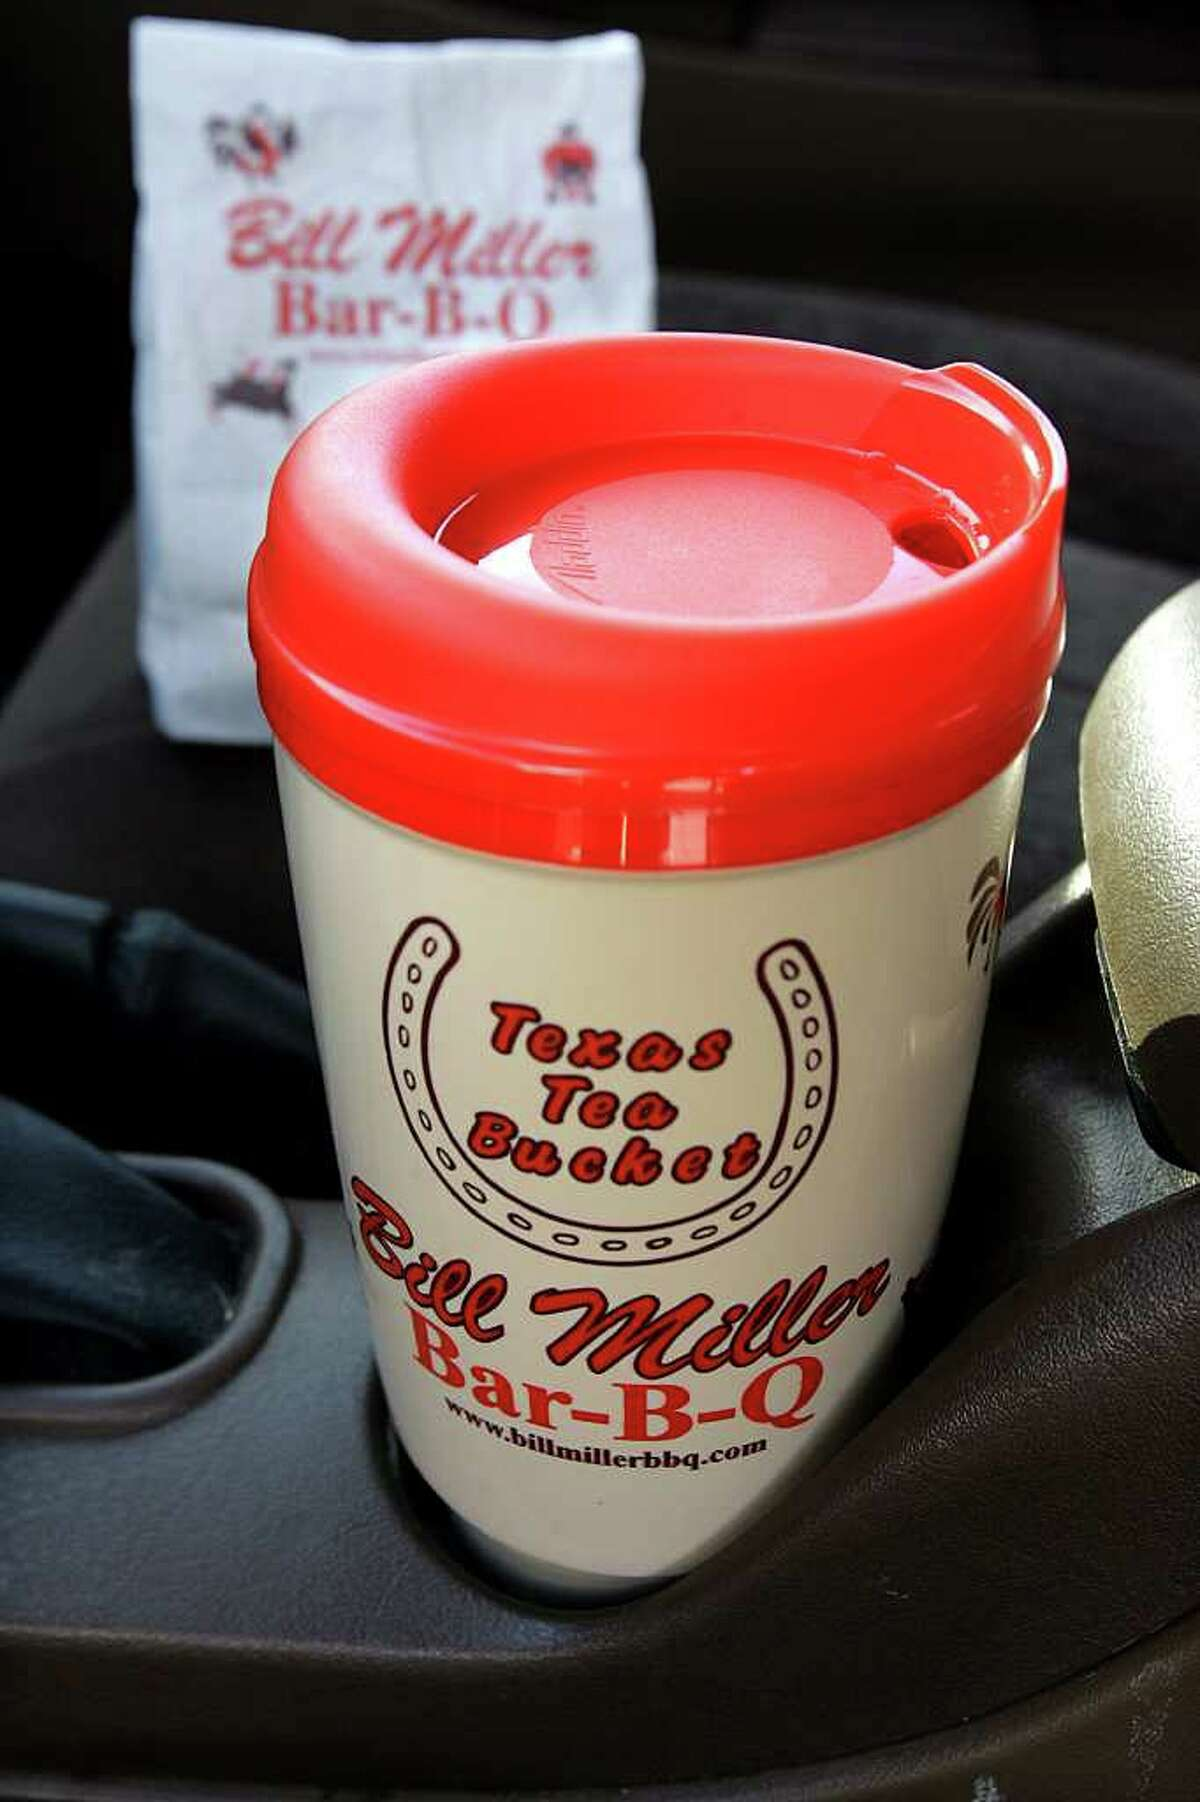 In honor of Tax Free Weekend, Bill Miller Bar-B-Q is offering a free tea refill when you bring in your Bill Miller Cup.